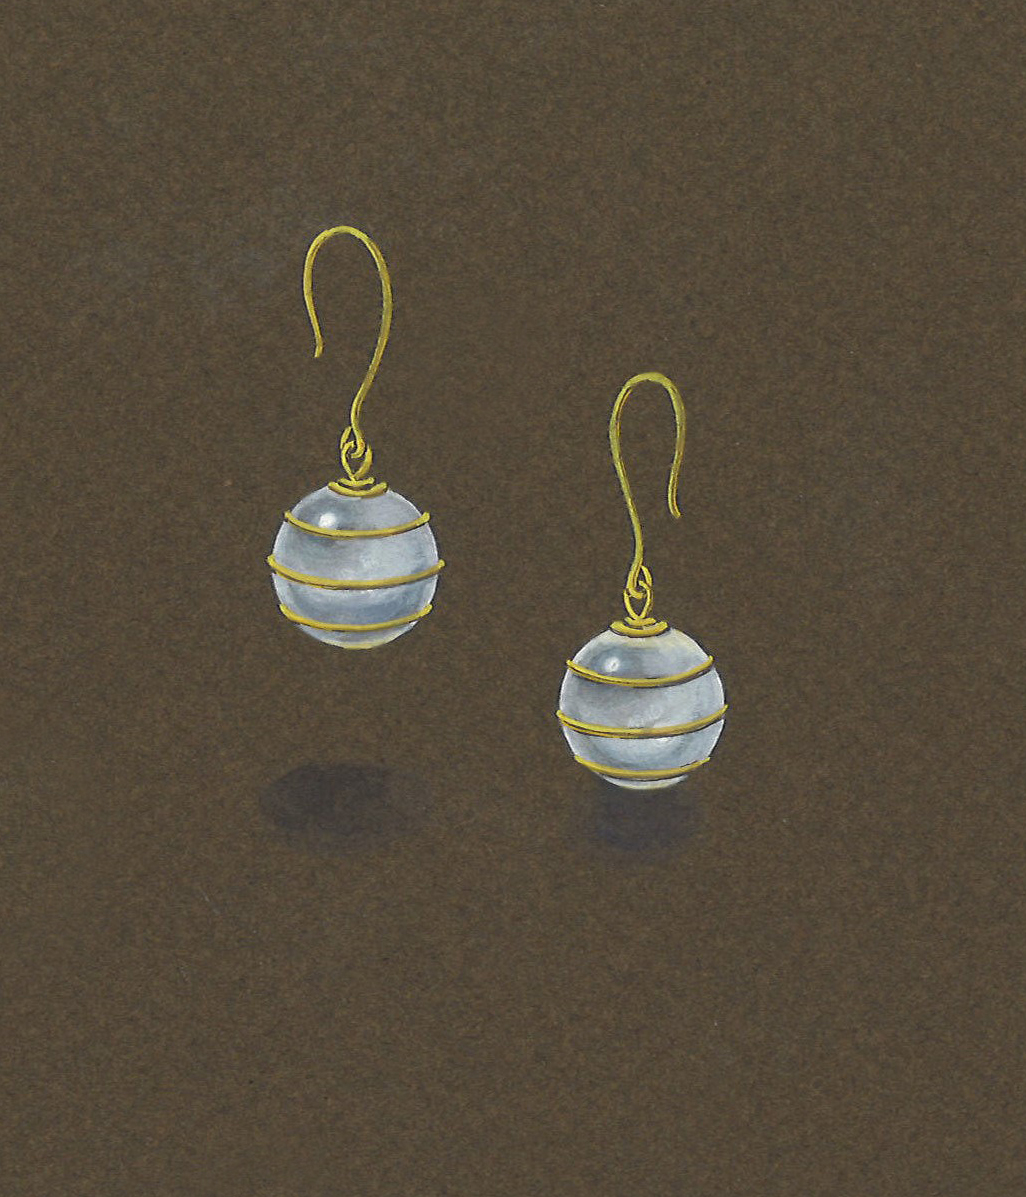 mish_products_earrings_Orbiting-Prl-Golden SS-ER-Editorial-1